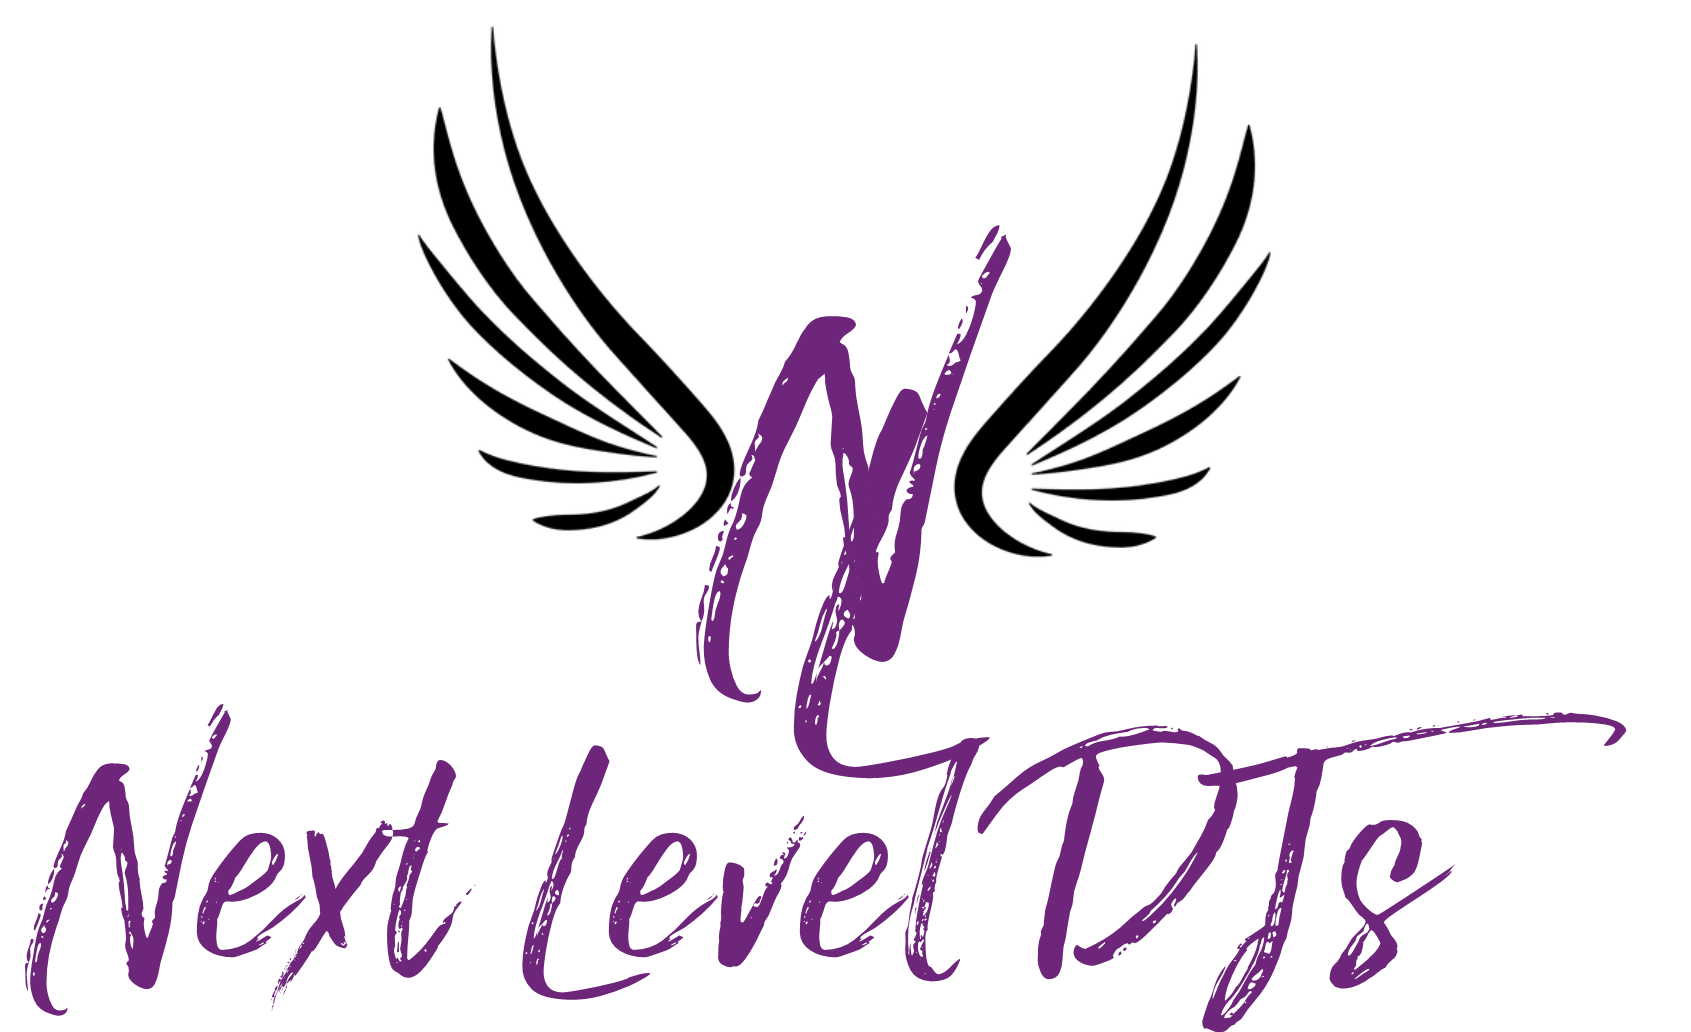 The Next Level DJs, LLC Logo